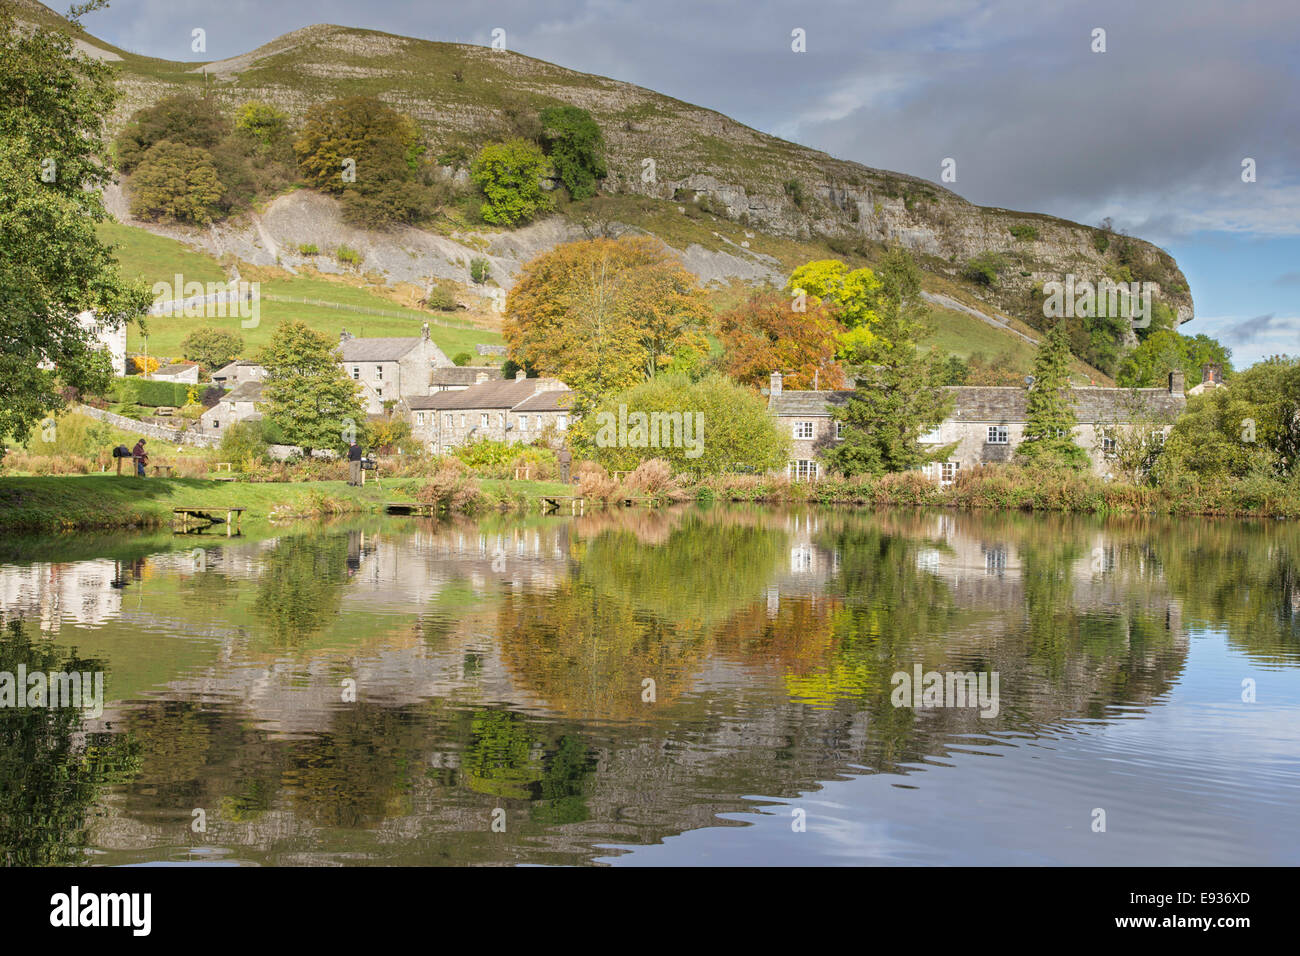 Autumn reflections of Kilnsey Crag from Kilnsey Park, Wharfdale, Yorkshire Dales National Park, North Yorkshire, - Stock Image